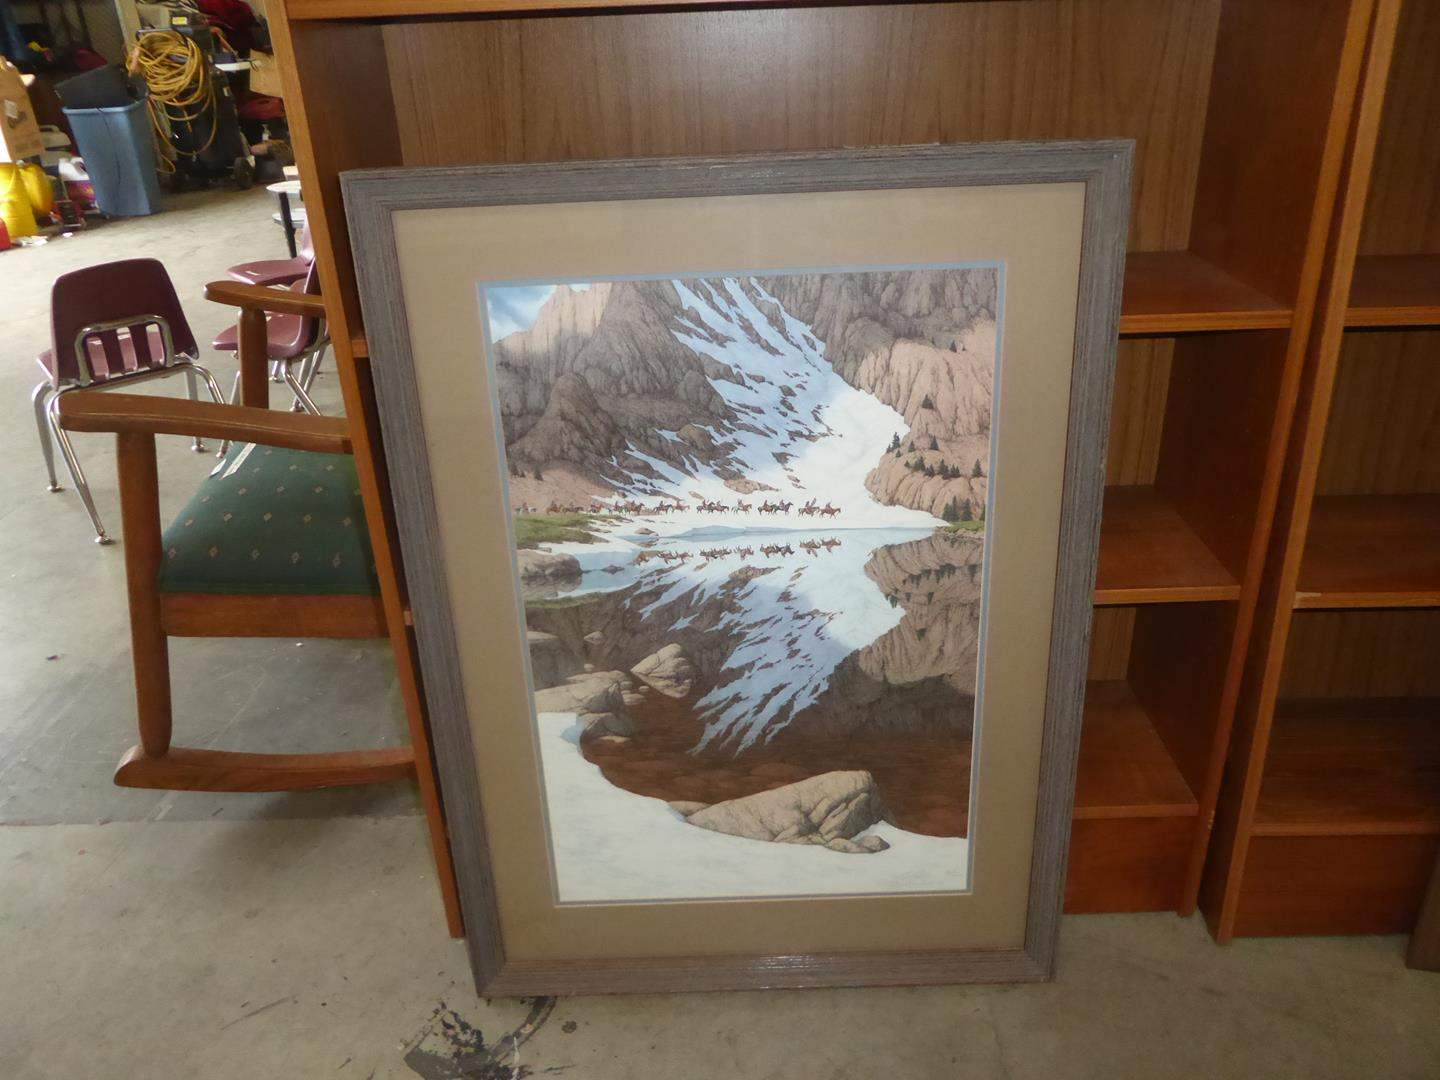 "Lot # 81 - Framed Signed Numbered Bev Doolittle Print ""Season of the Eagle"" 21311 / 36548 (main image)"